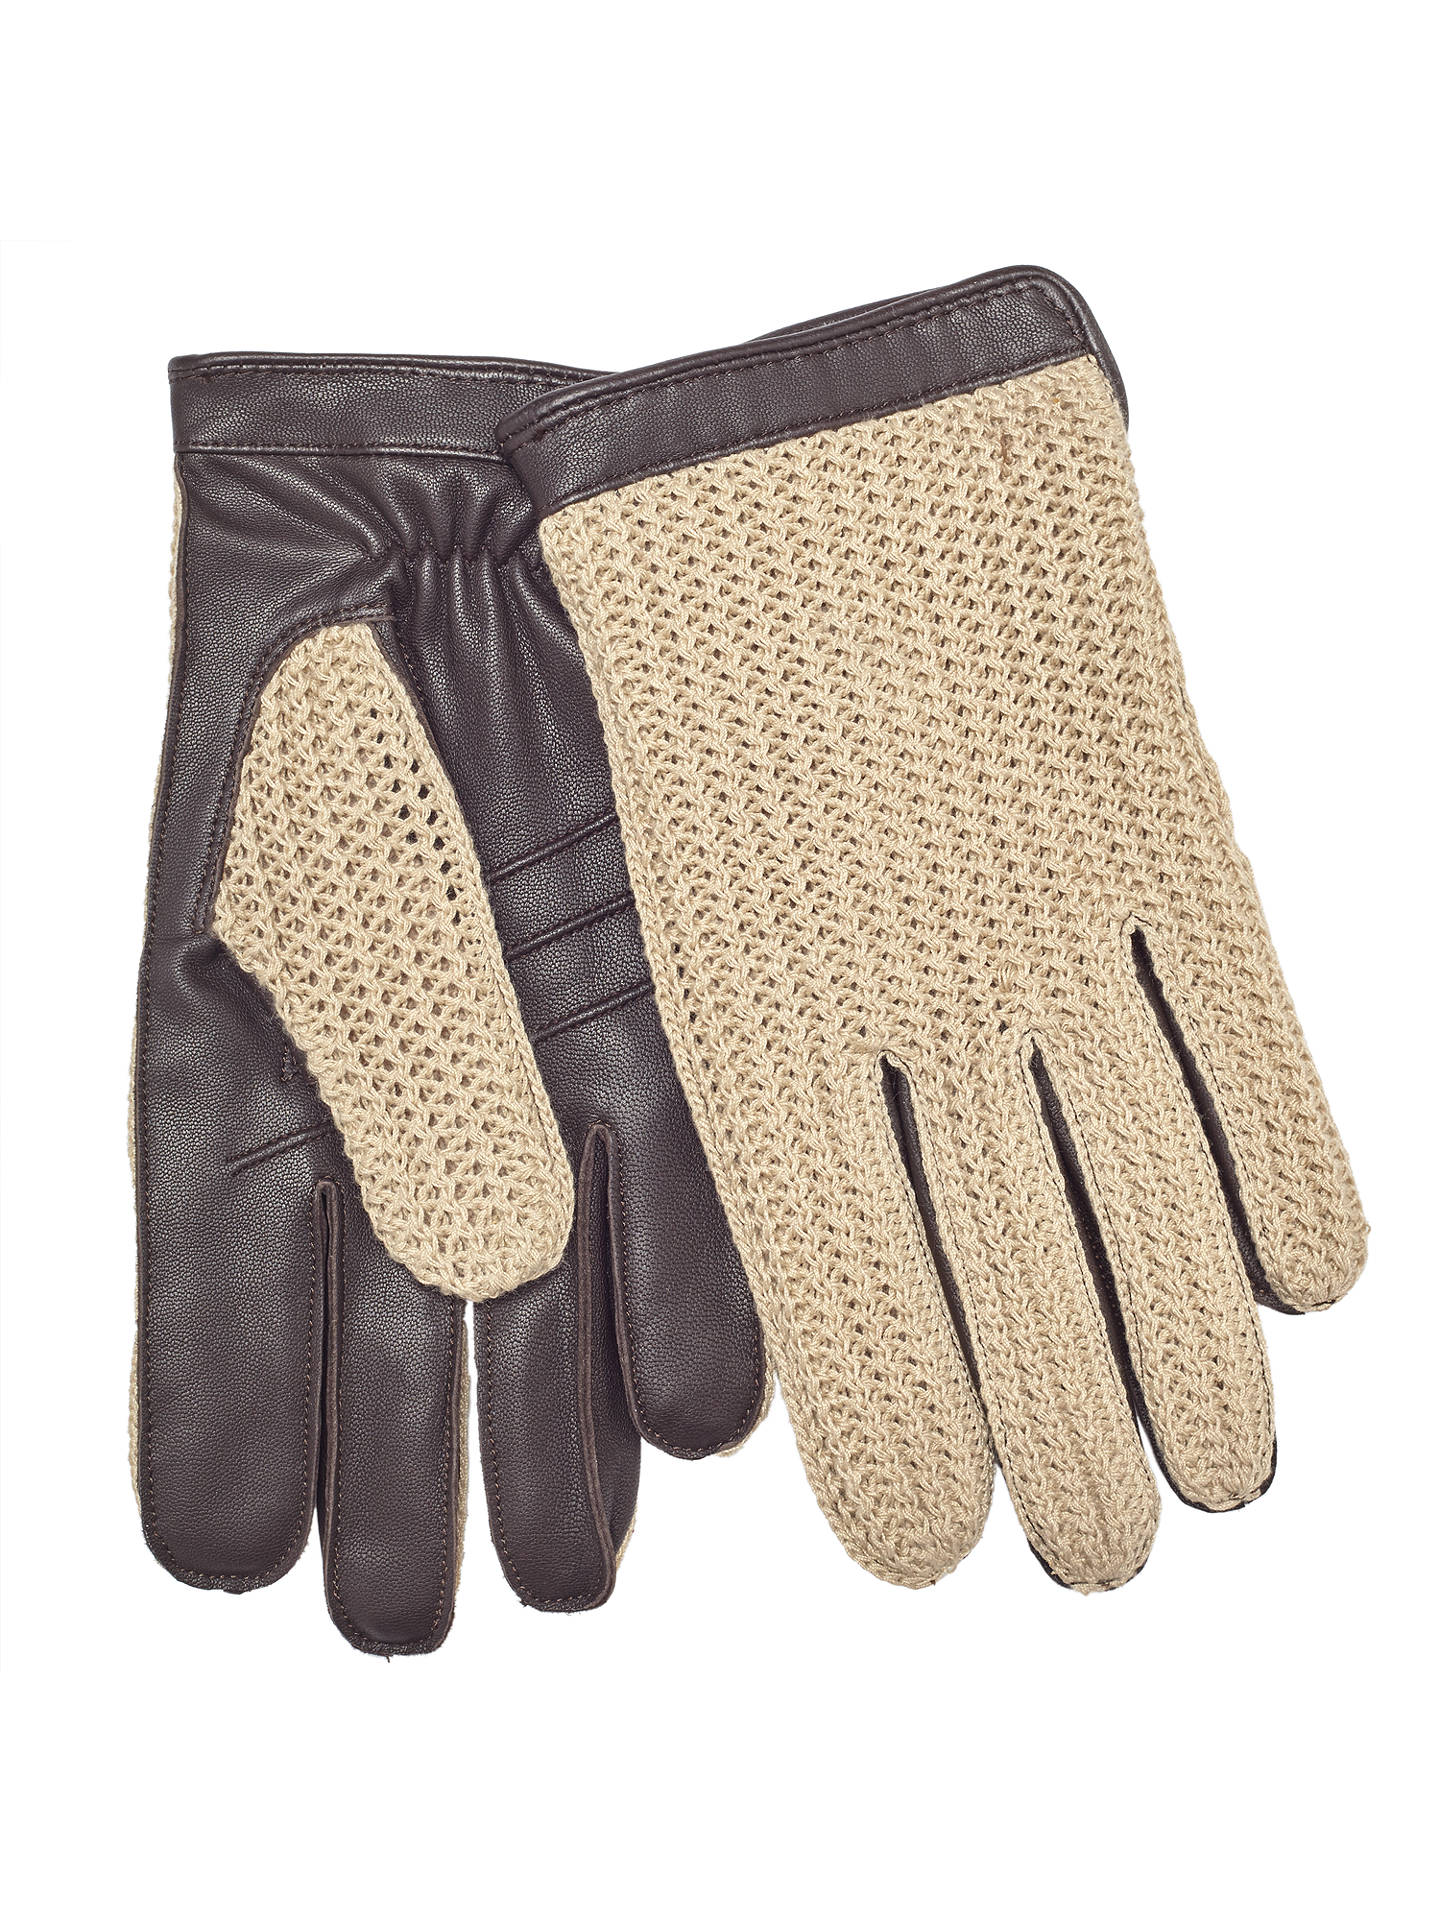 Buy John Lewis & Partners Crochet Back Wool Lined Leather Driving Gloves, Brown, M Online at johnlewis.com